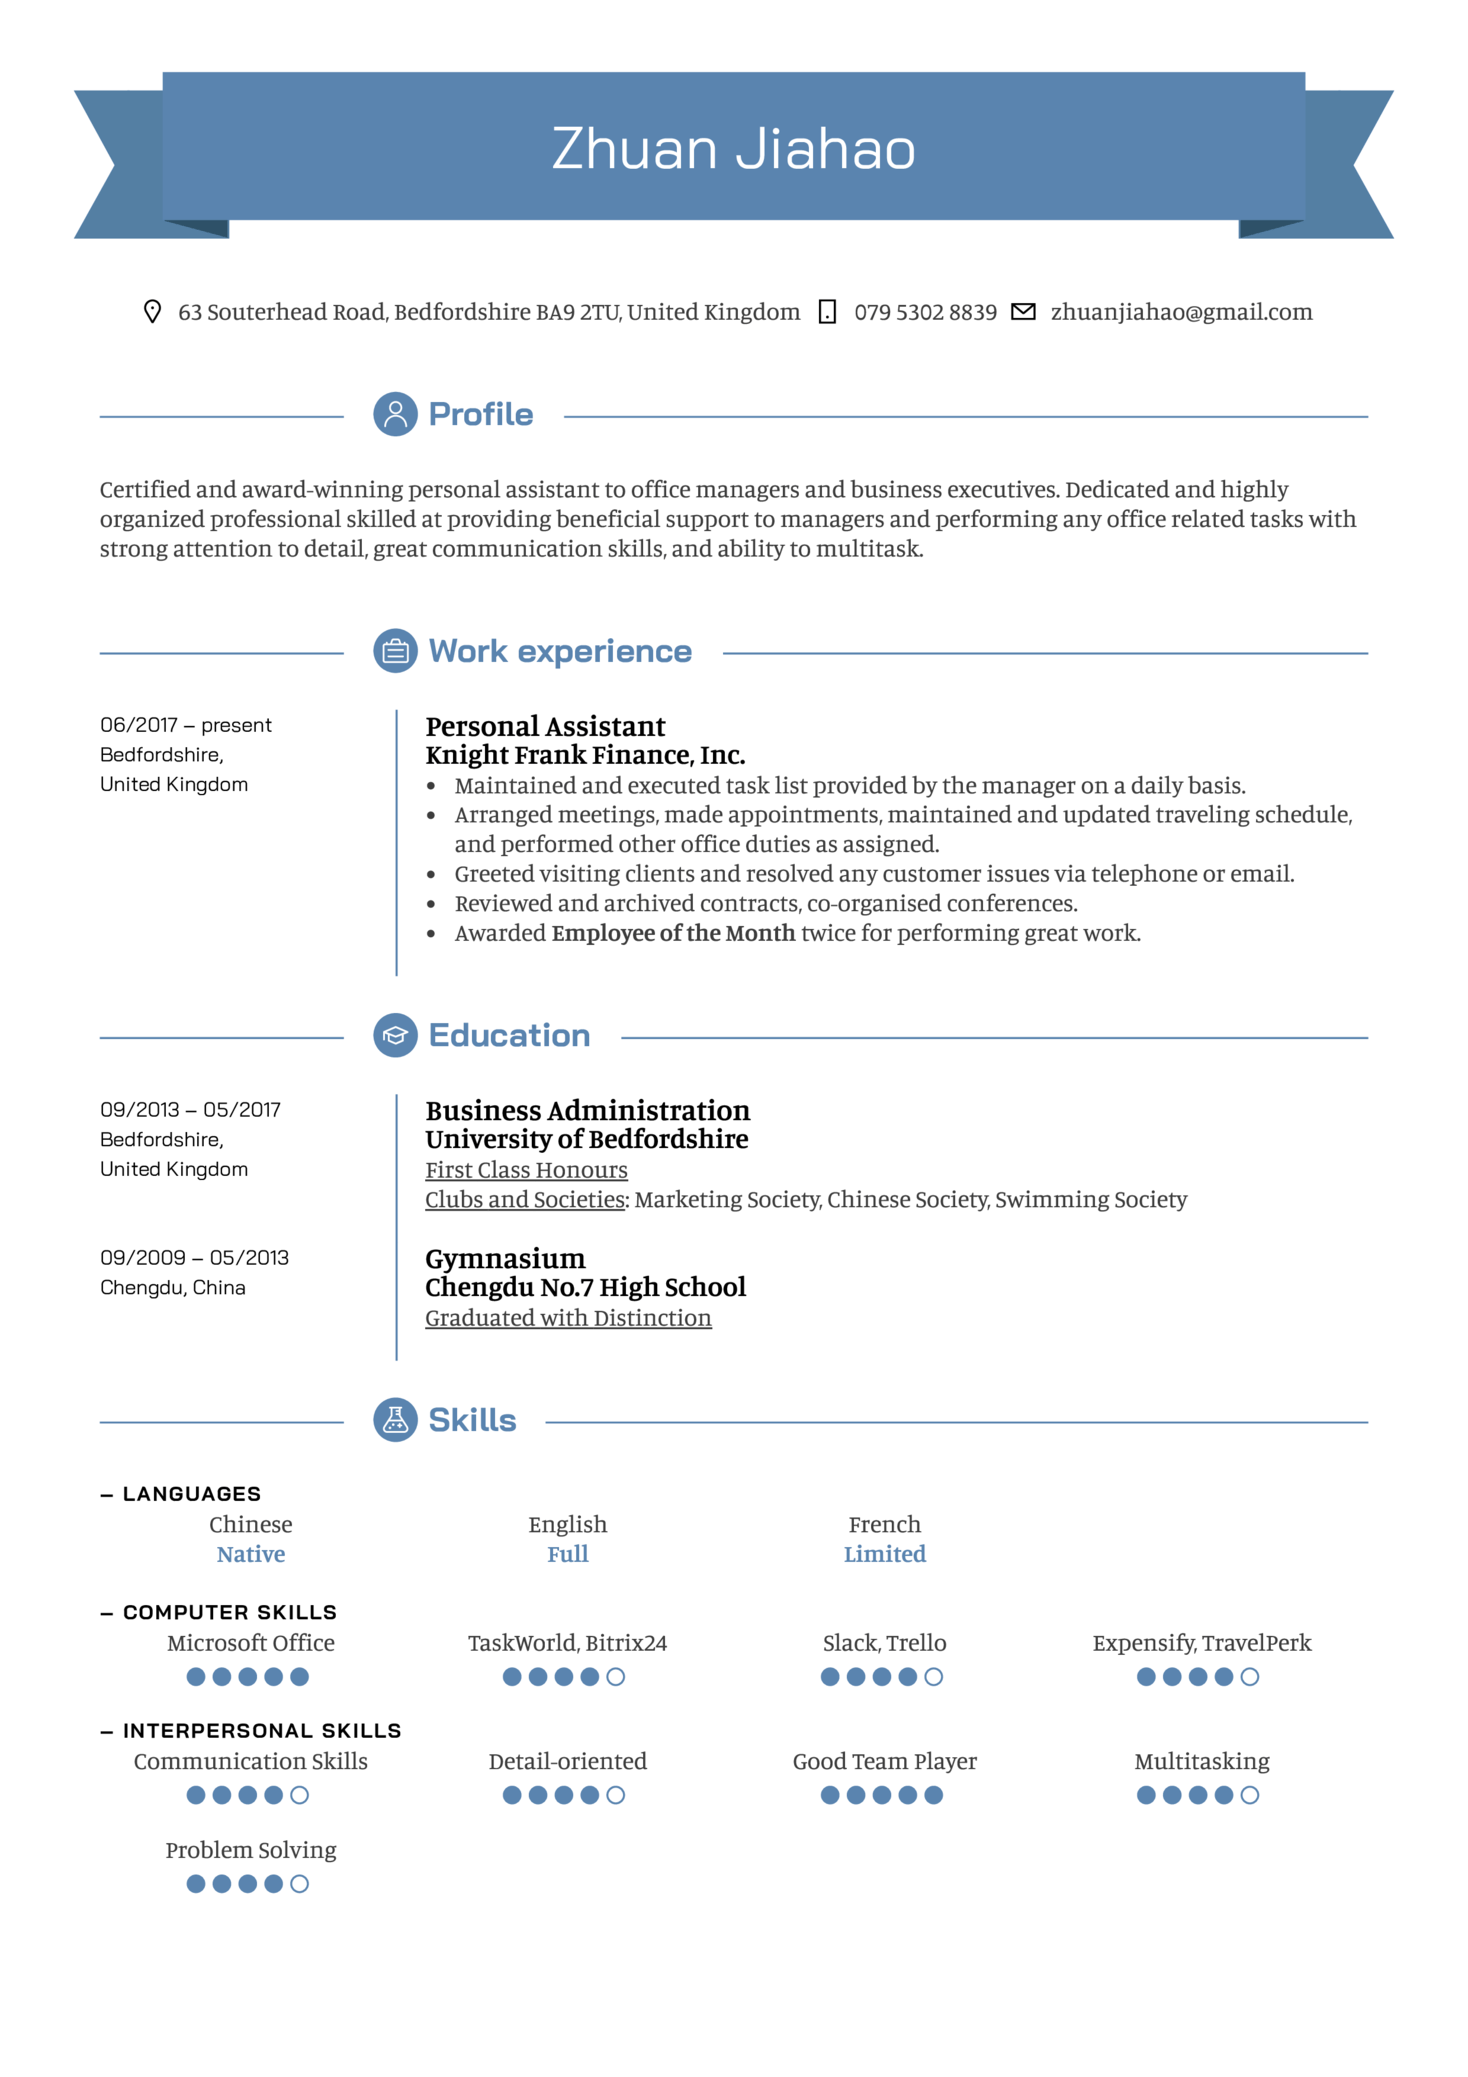 Personal Assistant Resume Example (parte 1)